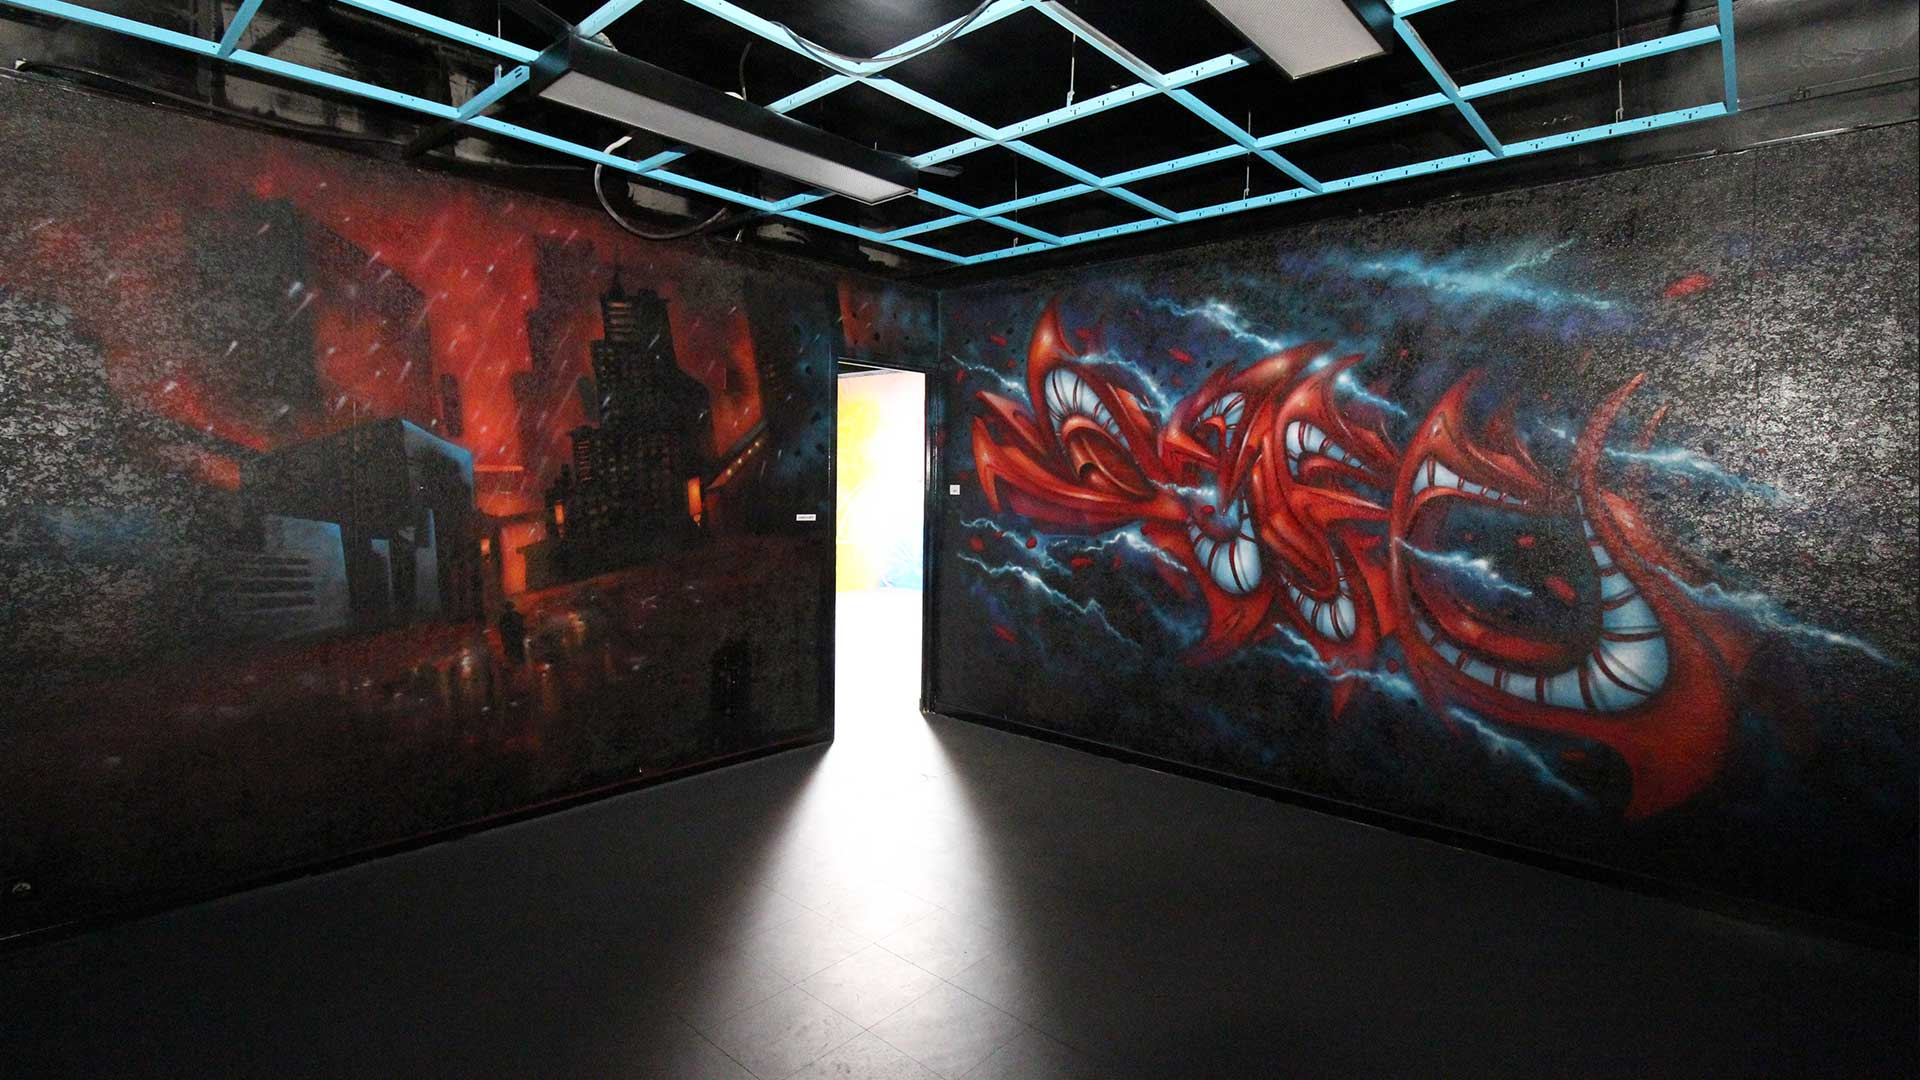 deft-graffiti-3d-exposition-graff-in